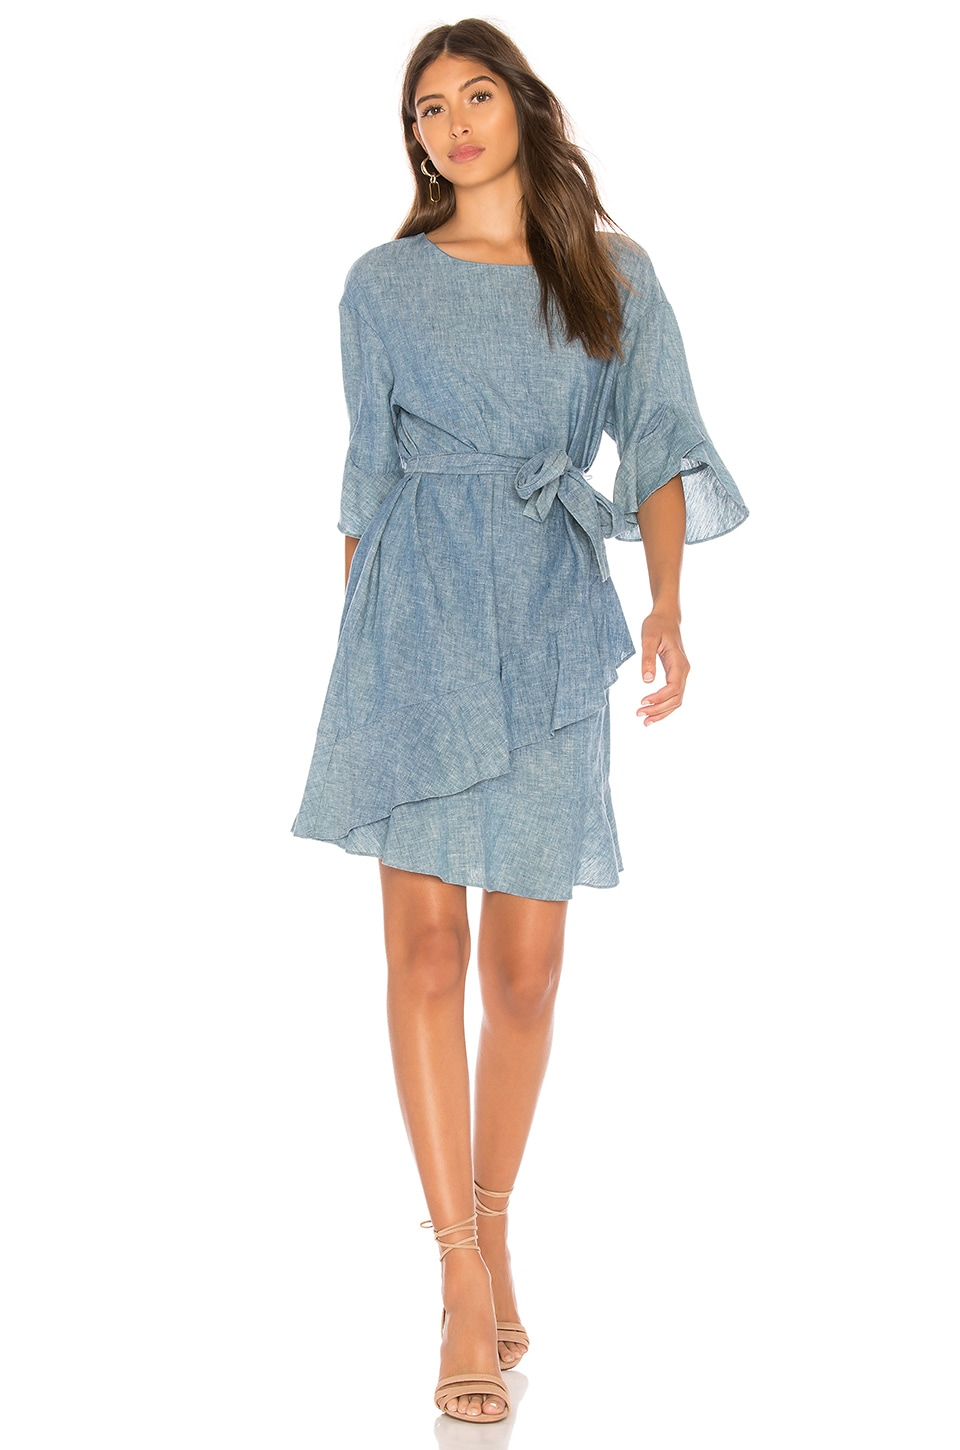 THE JETSET DIARIES Sloan Mini Dress in Denim